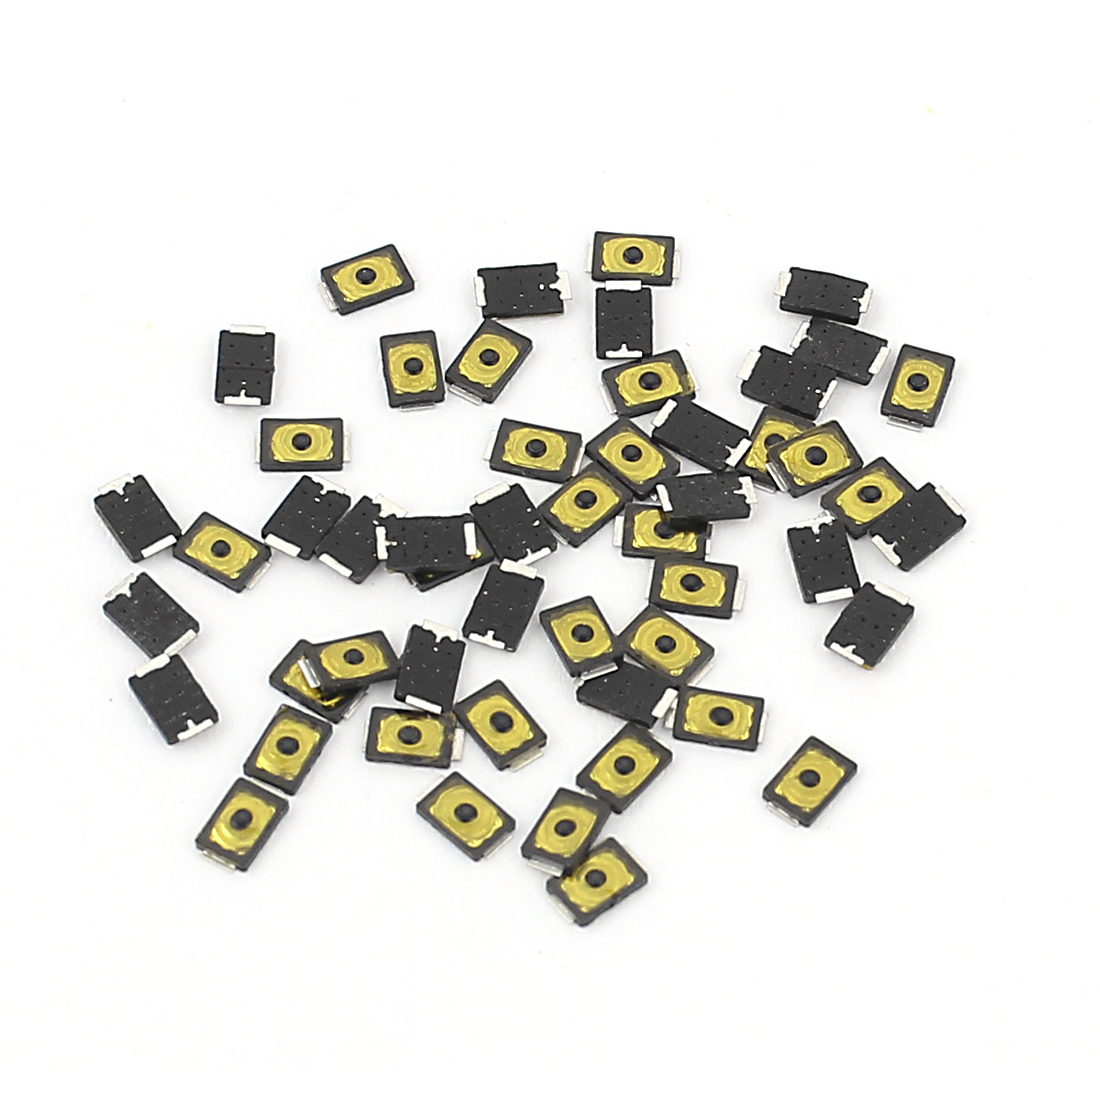 50 Pcs SMD Pushbutton Key Micro Momentary Tact Tactile Switch 3x2mm